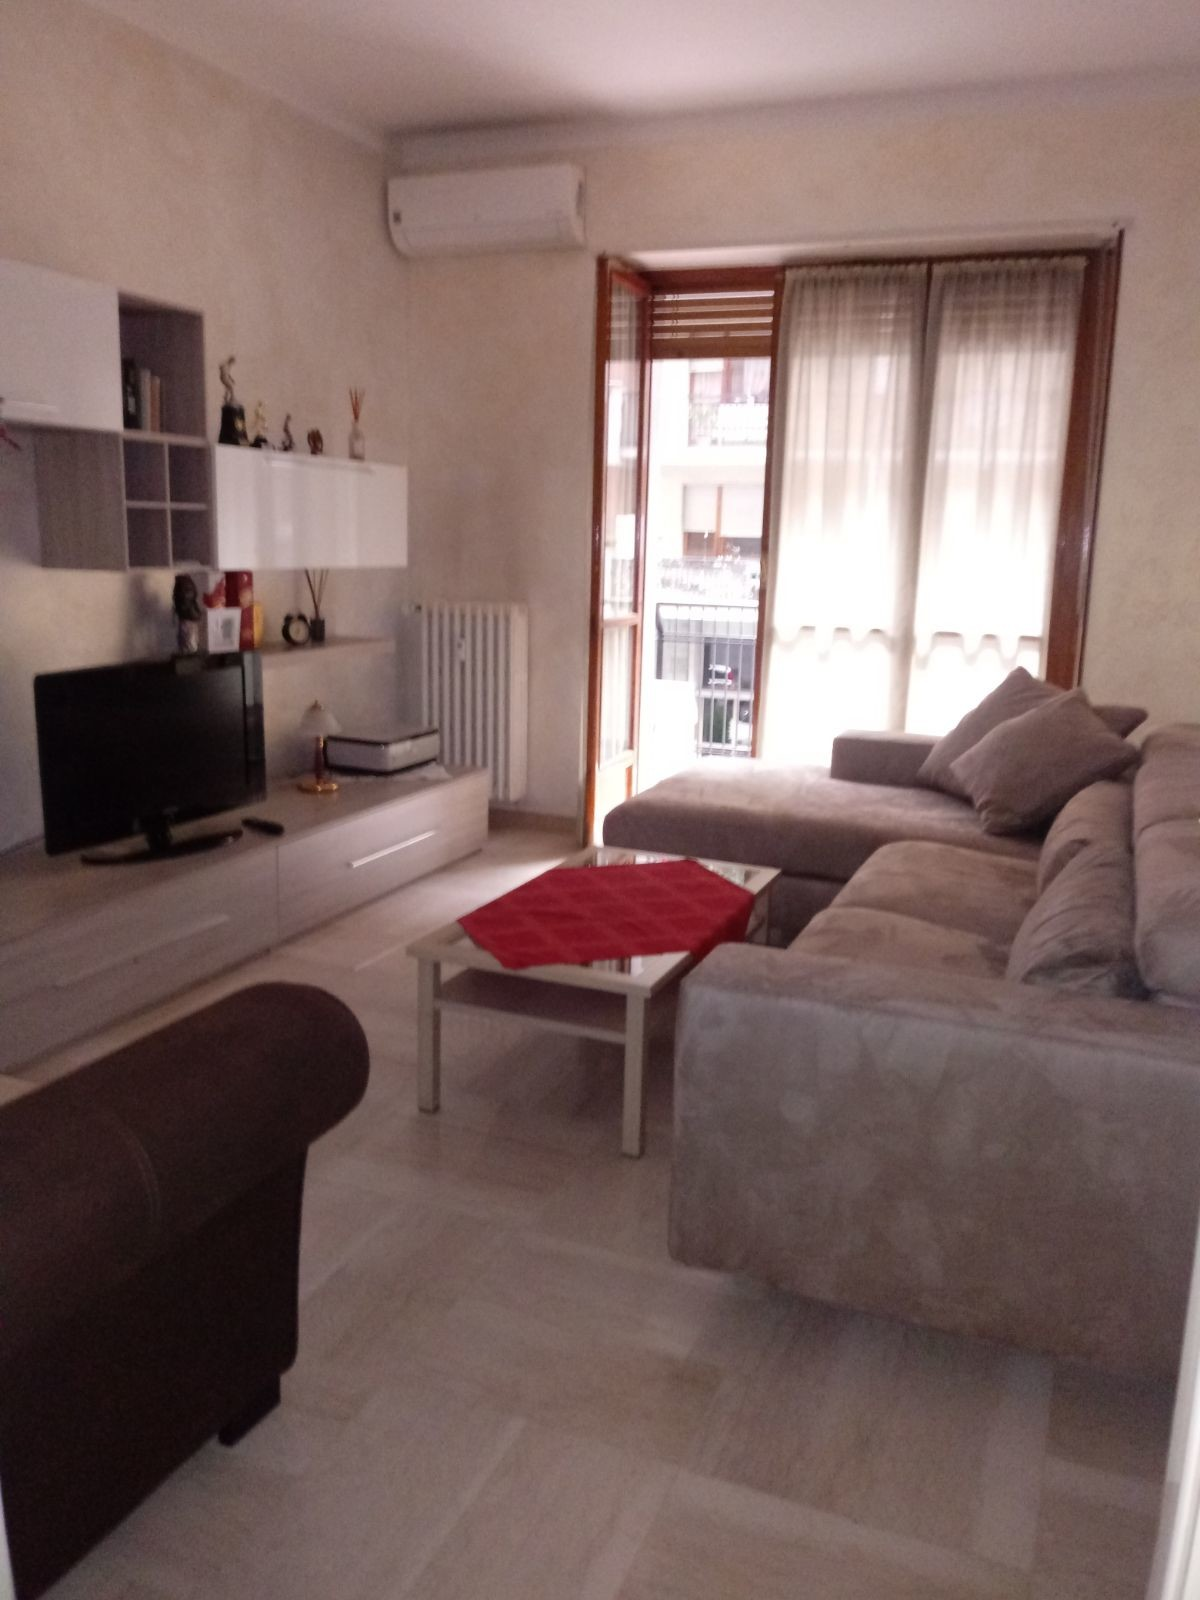 Spacious comfortable private room in shared apartment